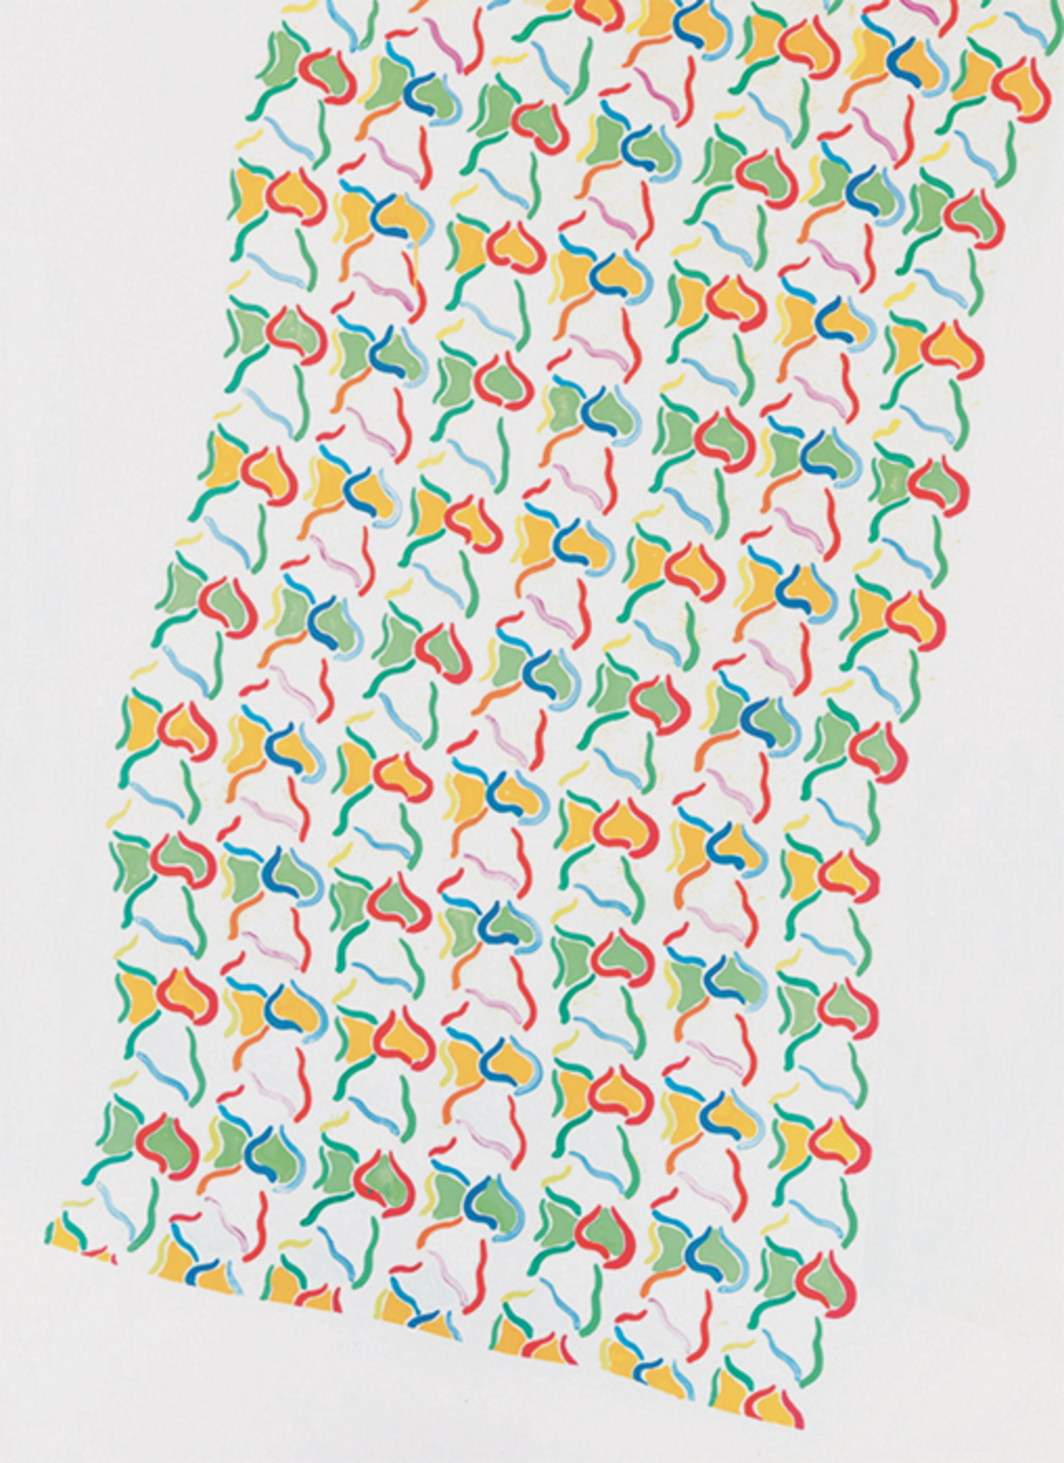 "Konrad Lueg, Handtuch (Hand Towel), 1965, casein on canvas, 78 3/4 x 57 1/8""."